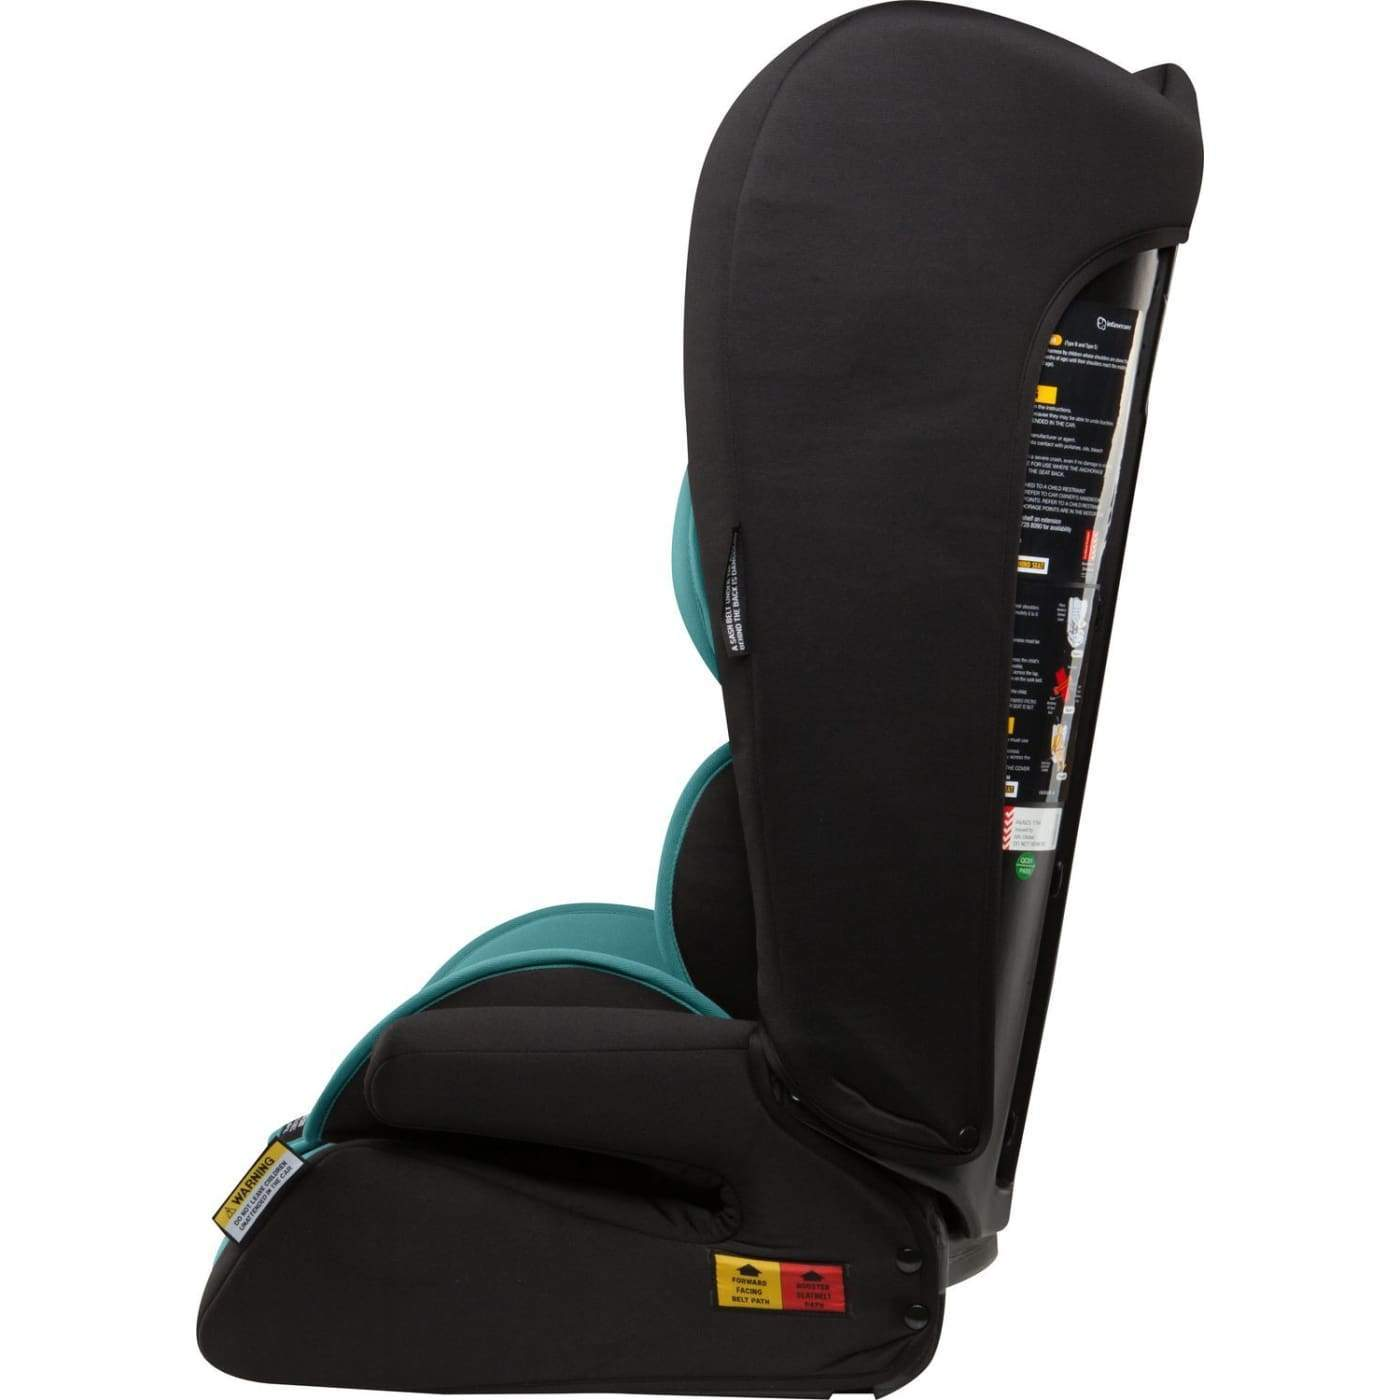 InfaSecure Astra Comfi Convertible Booster 6M-8YR - Aqua - CAR SEATS - CONV BOOSTERS (6M-8YR)